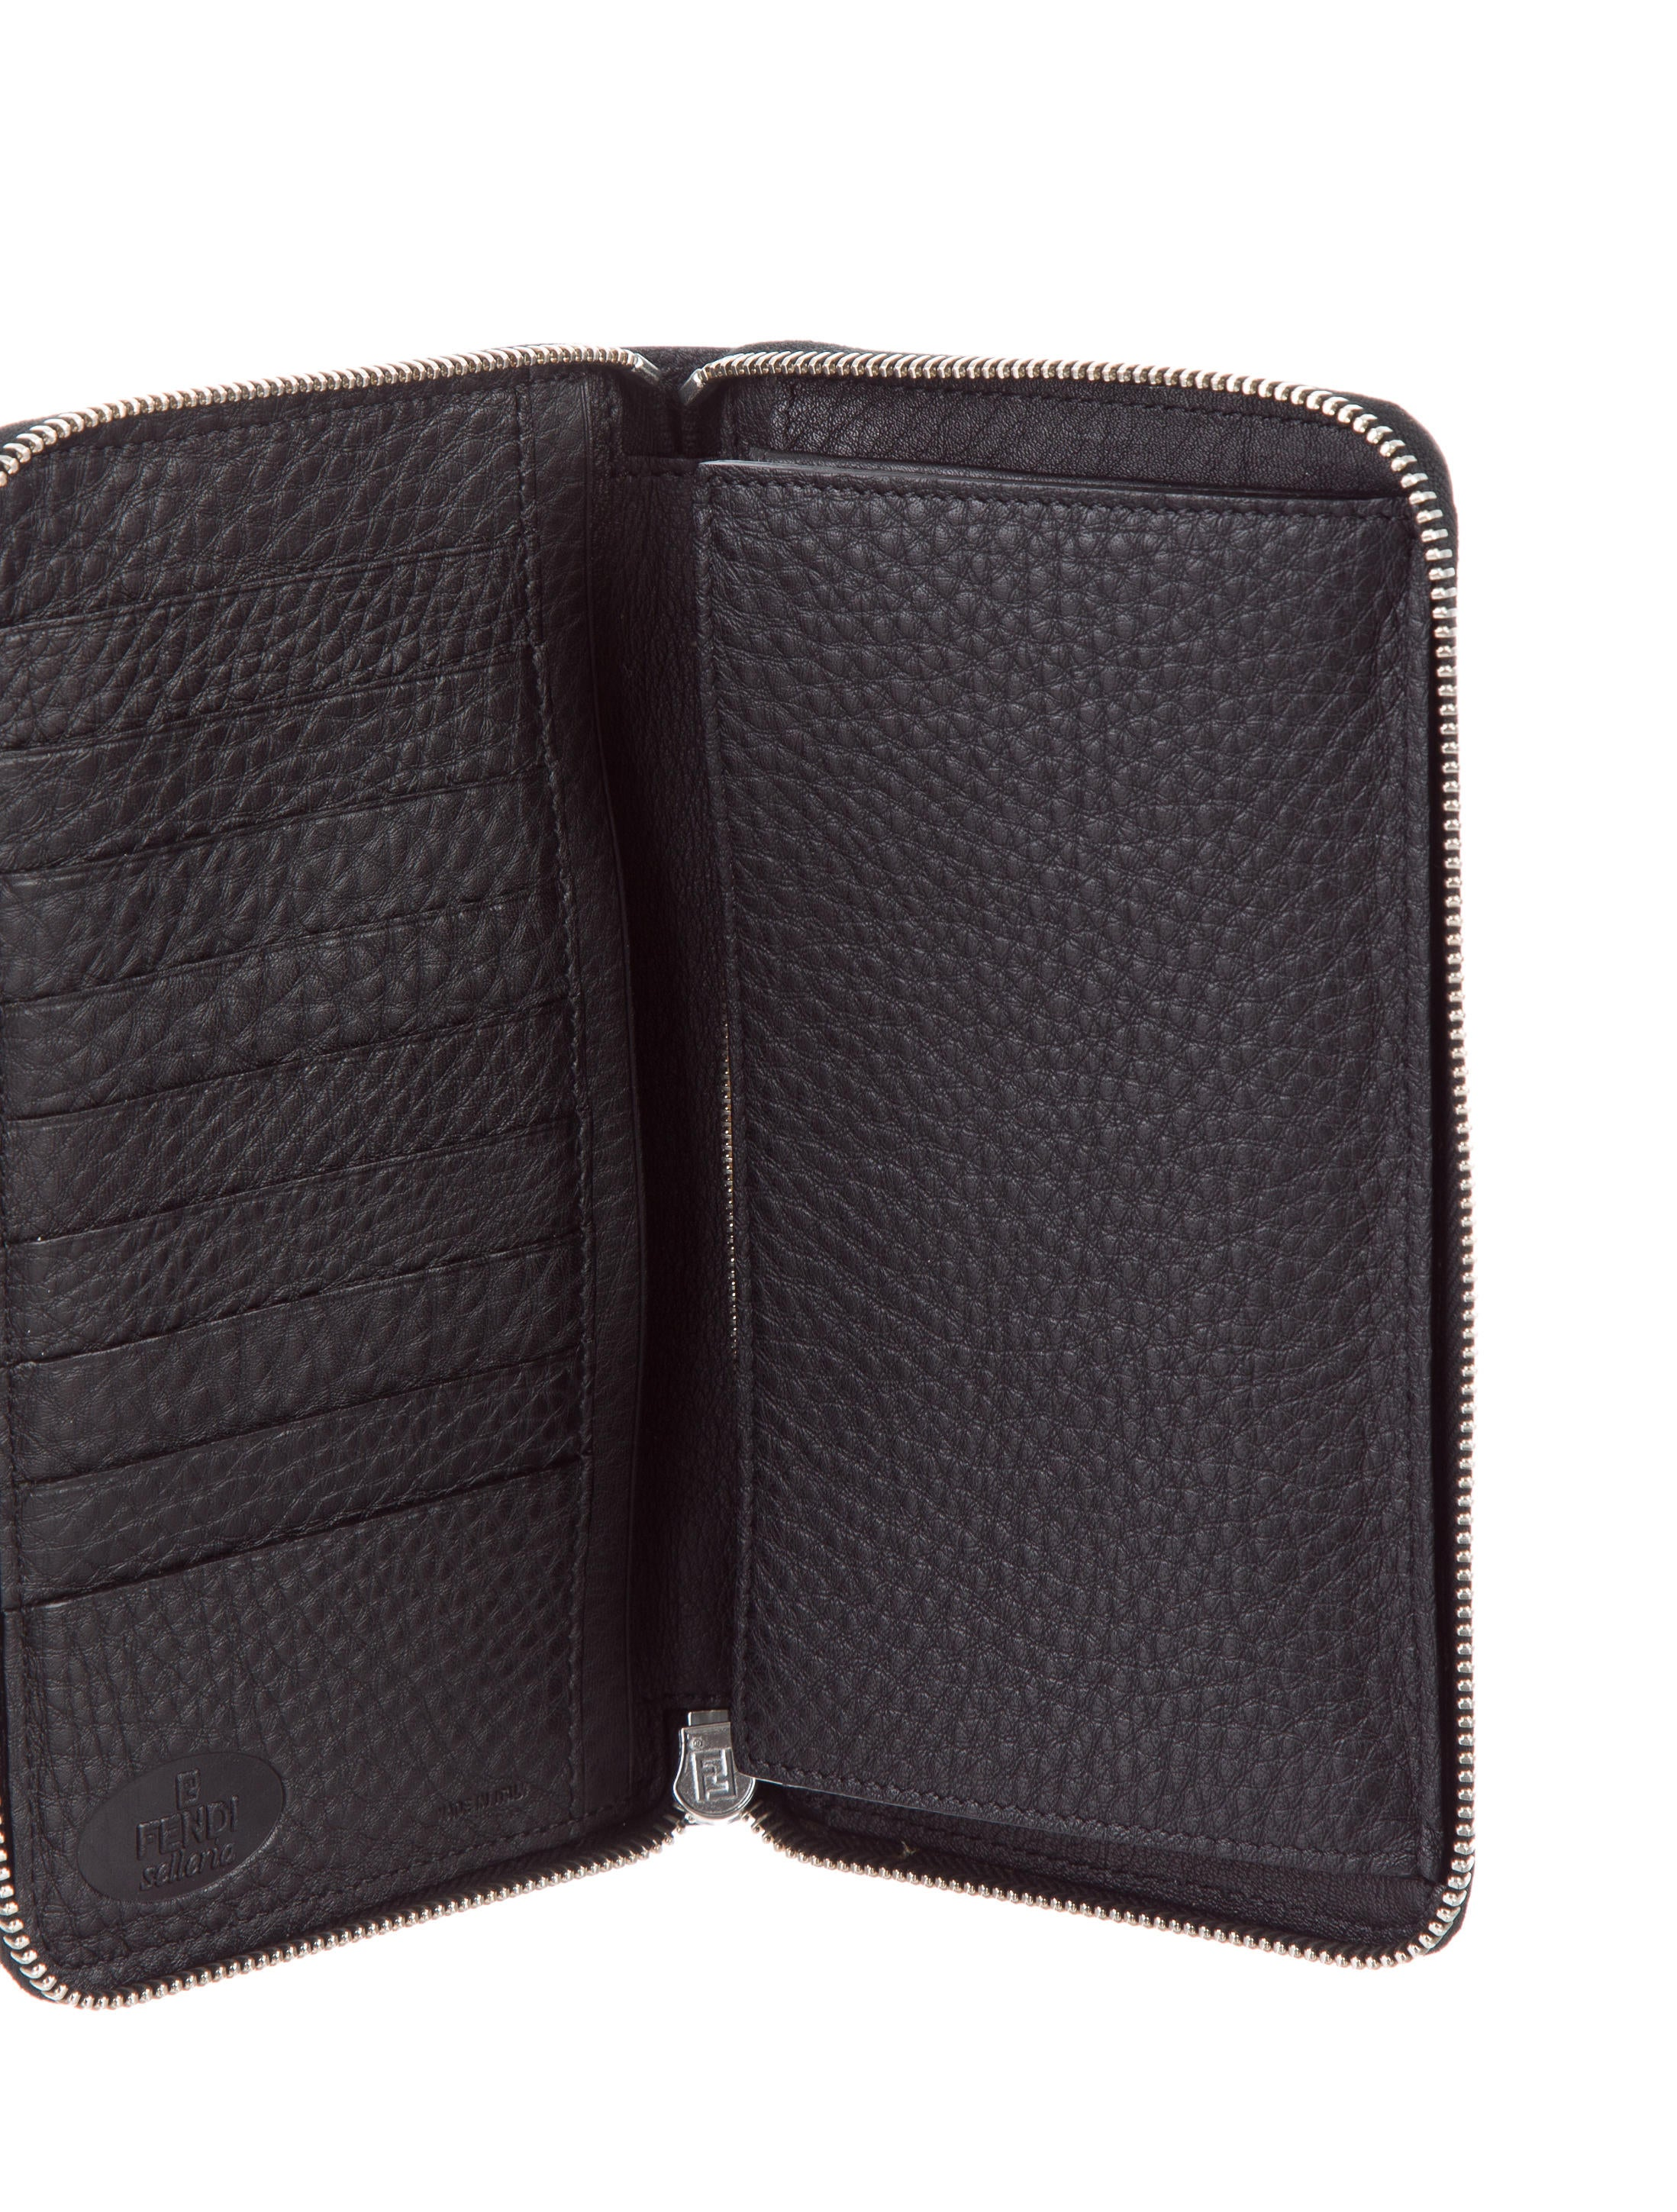 Fendi Leather Travel Wallet Accessories Fen63132 The